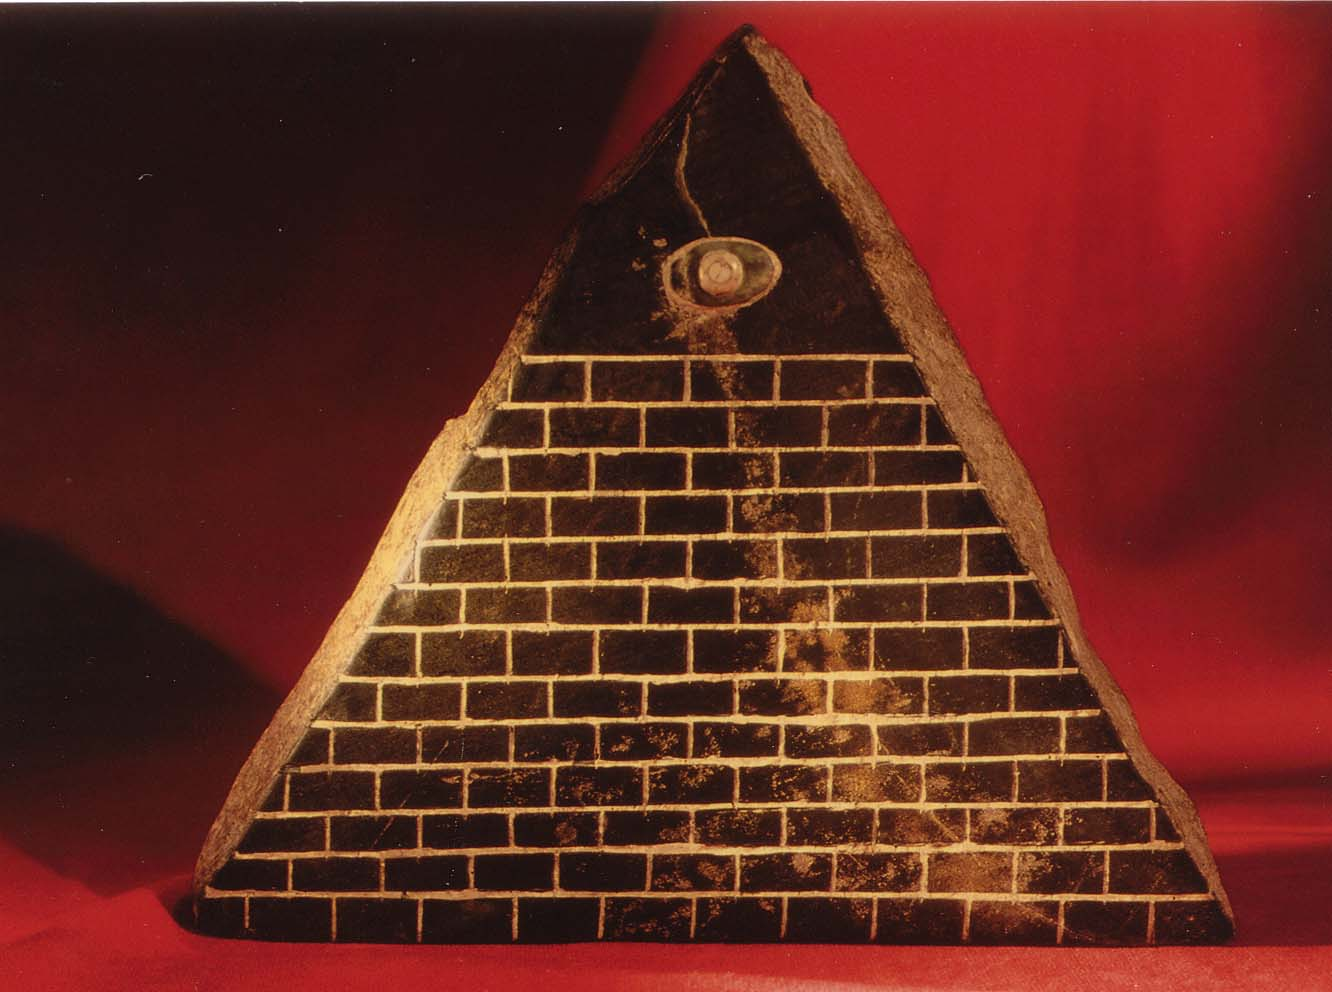 http://www.rense.com/kdona/01Pyramid%20stone%20with%20eye%20no.jpg